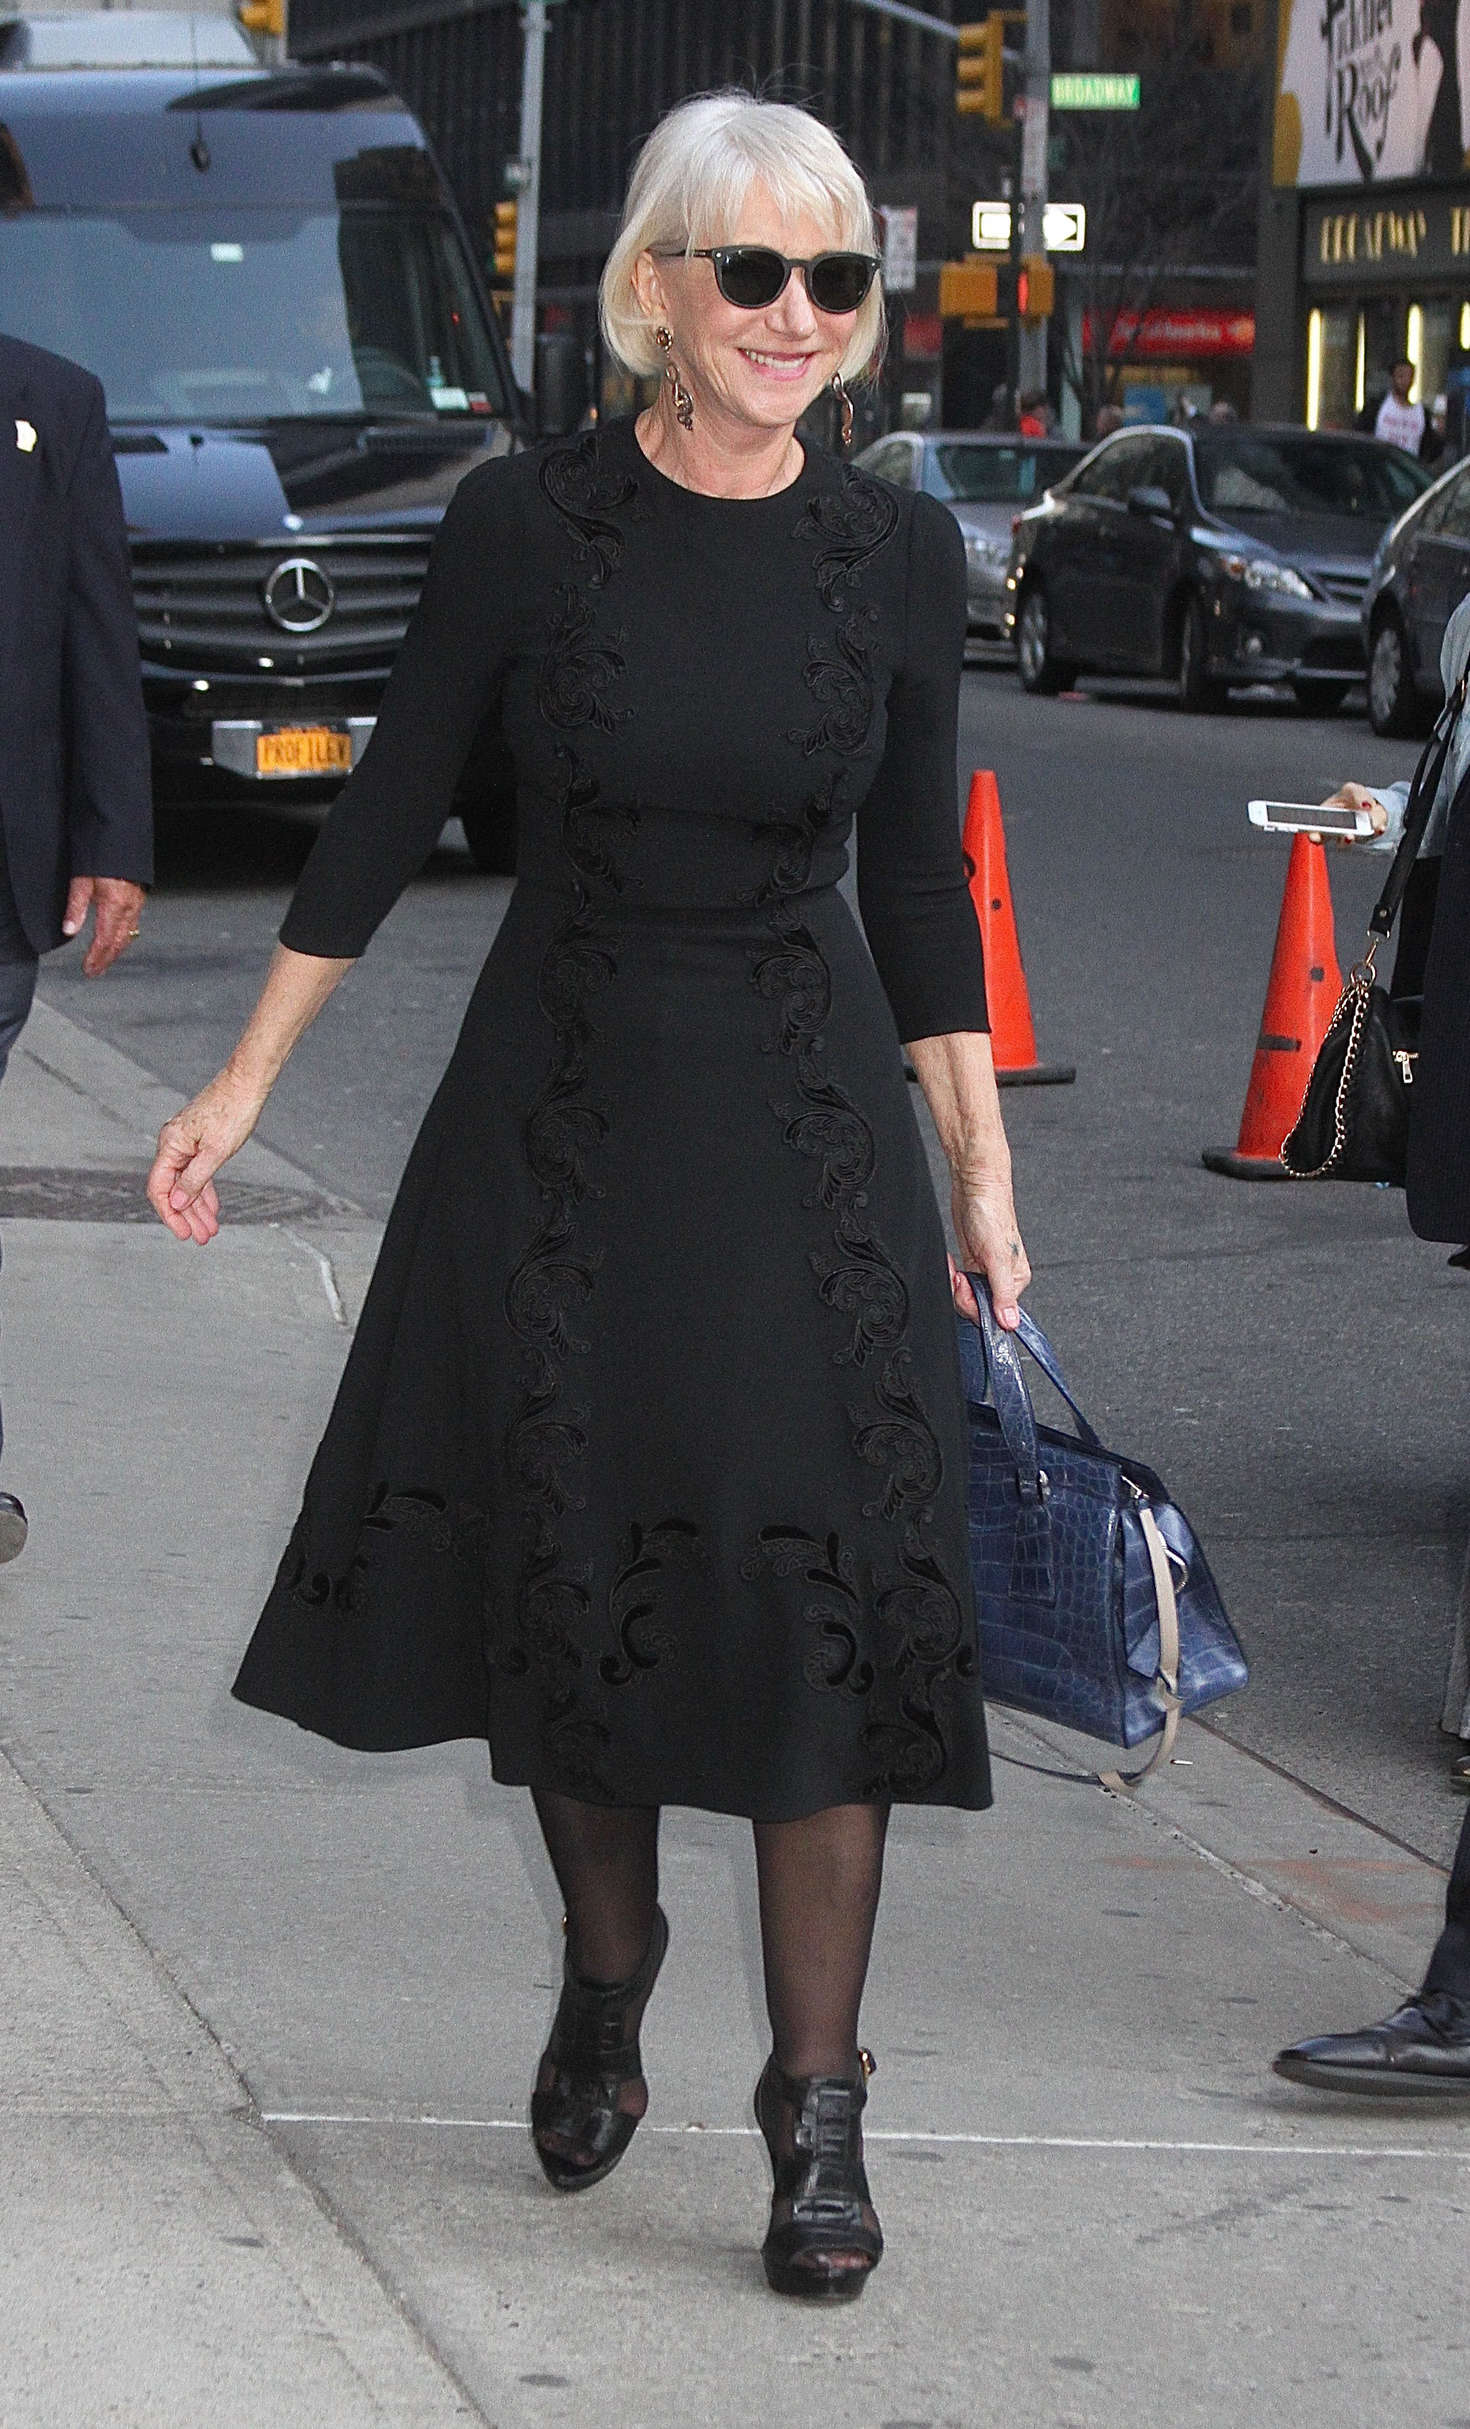 Helen Mirren Arrives at The Late Show with Stephen Colbert in New York